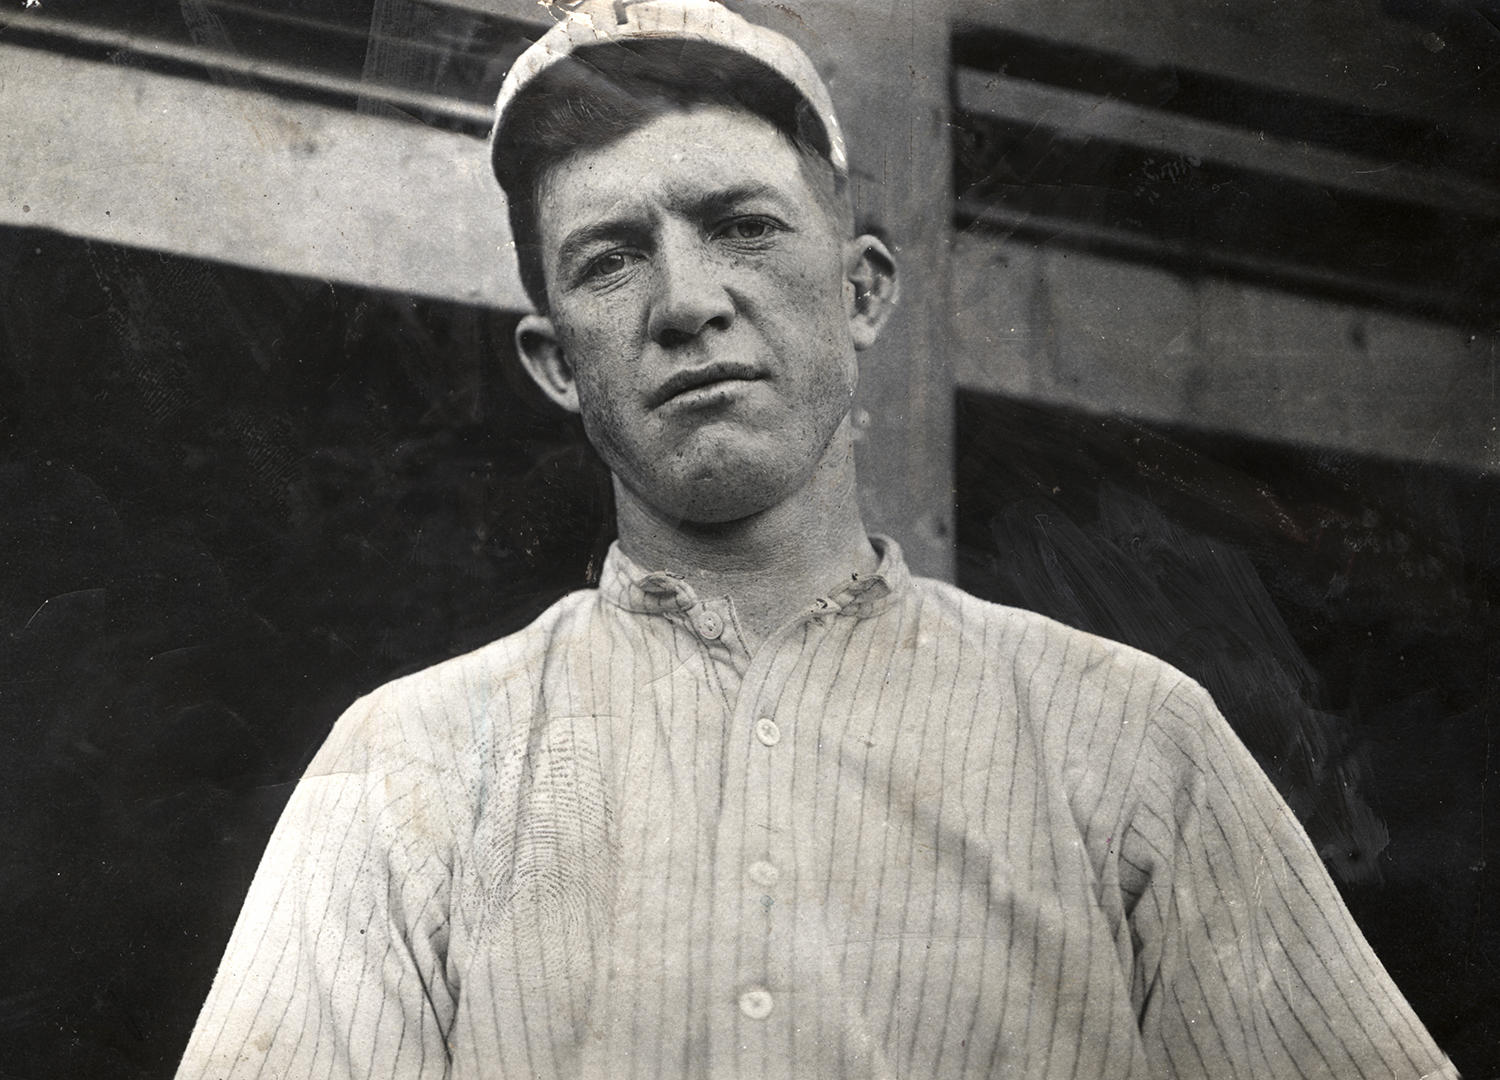 Grover Cleveland Alexander began his professional baseball career in 1911 at the age of 24 as a pitcher for the Philadelphia Phillies. He led all of baseball in wins his rookie year, with 28. (National Baseball Hall of Fame and Museum)